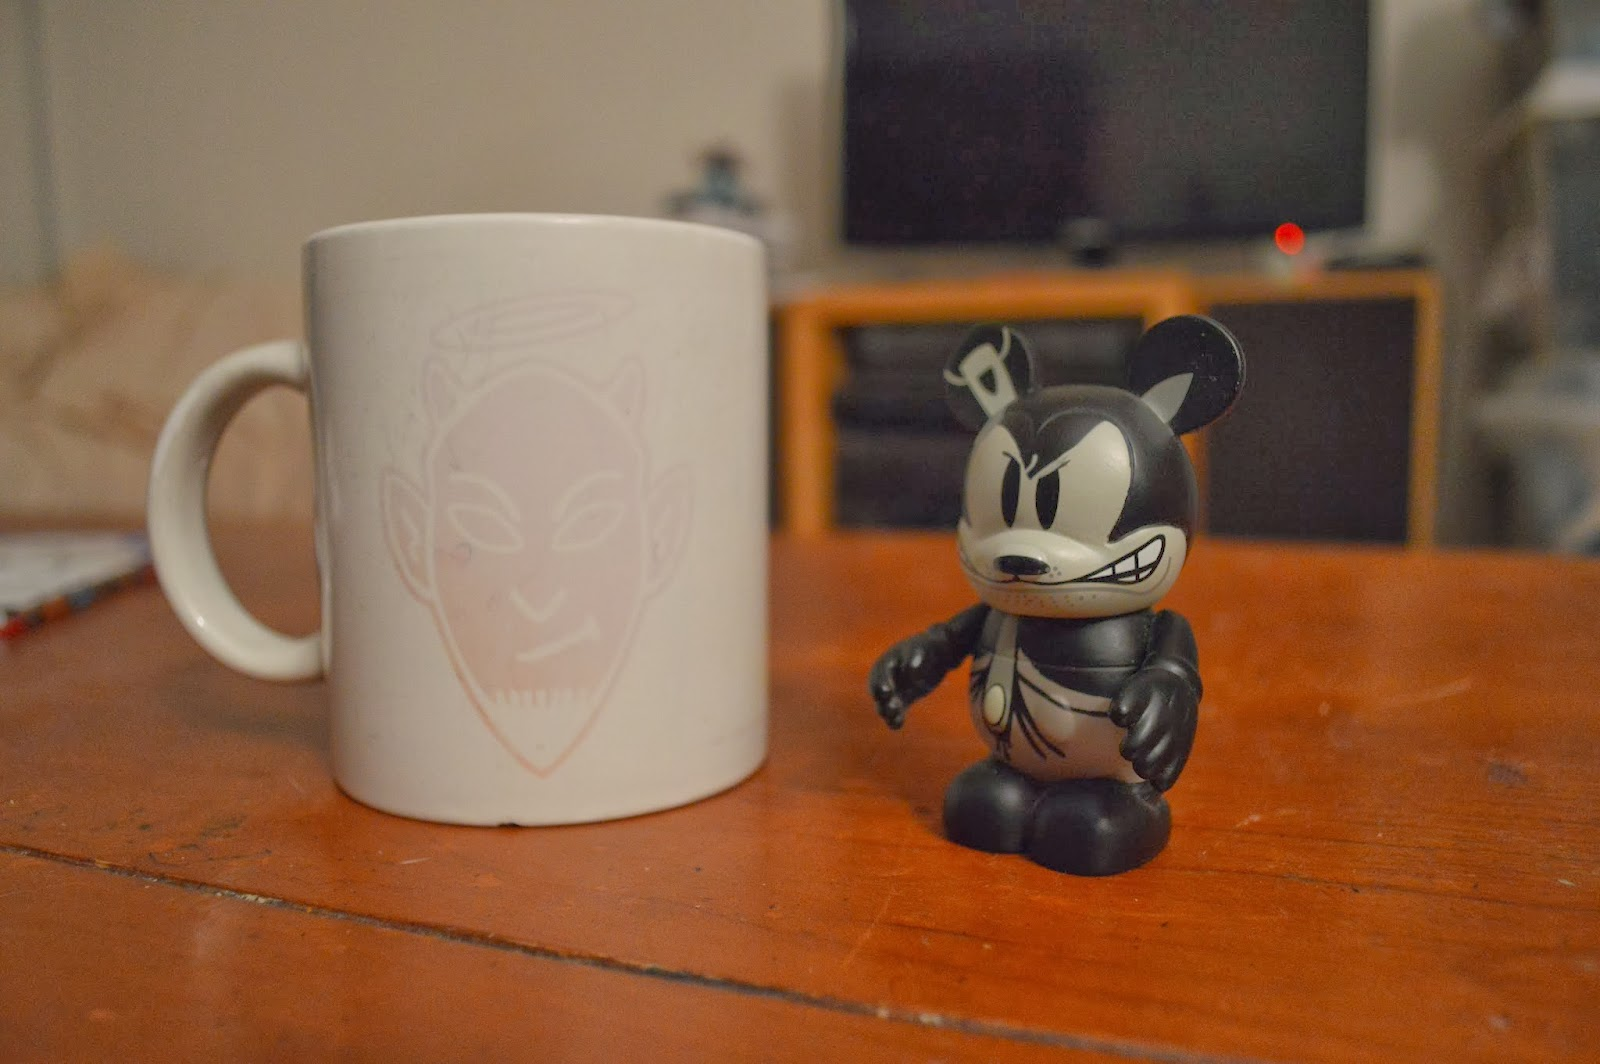 A photo of a cup and a figurine.